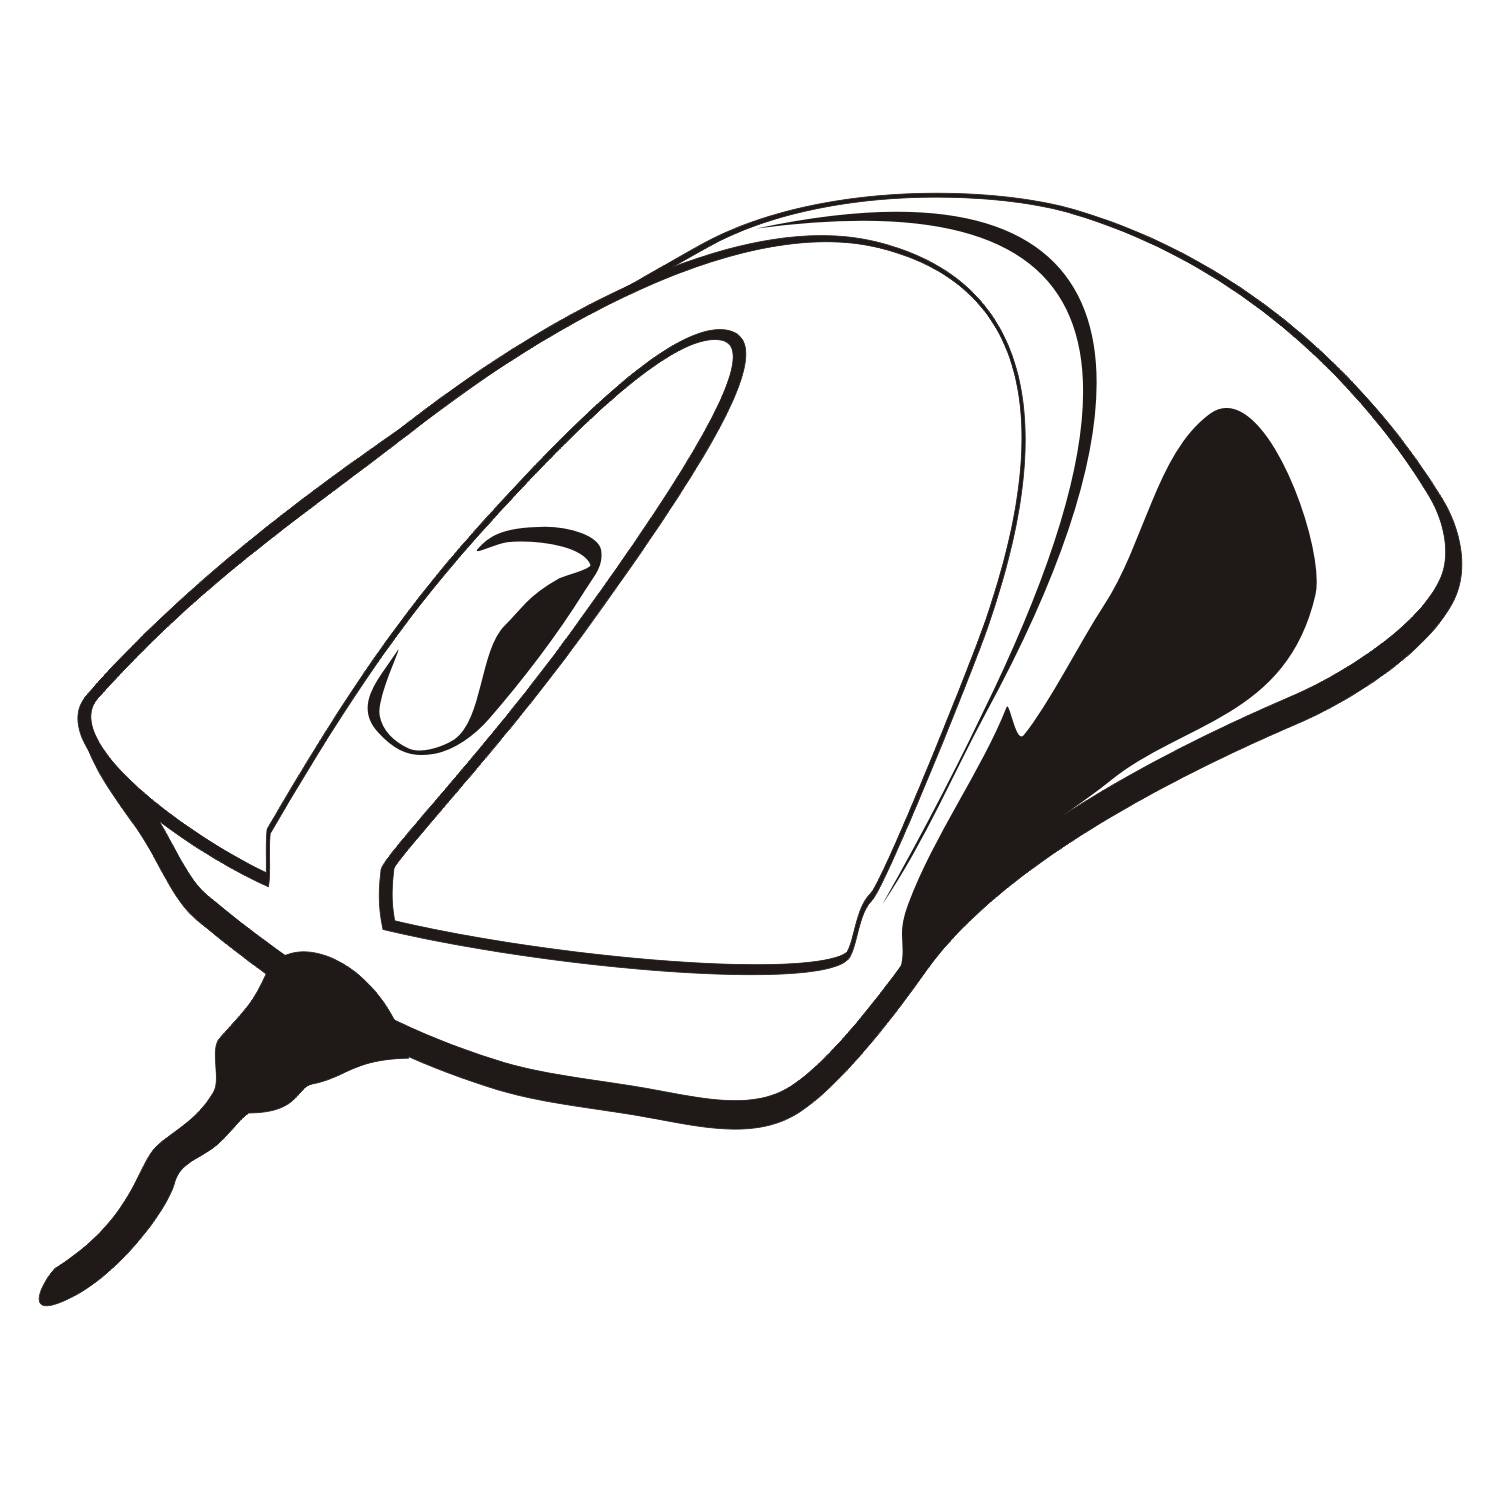 Black and white illustration of a computer mouse